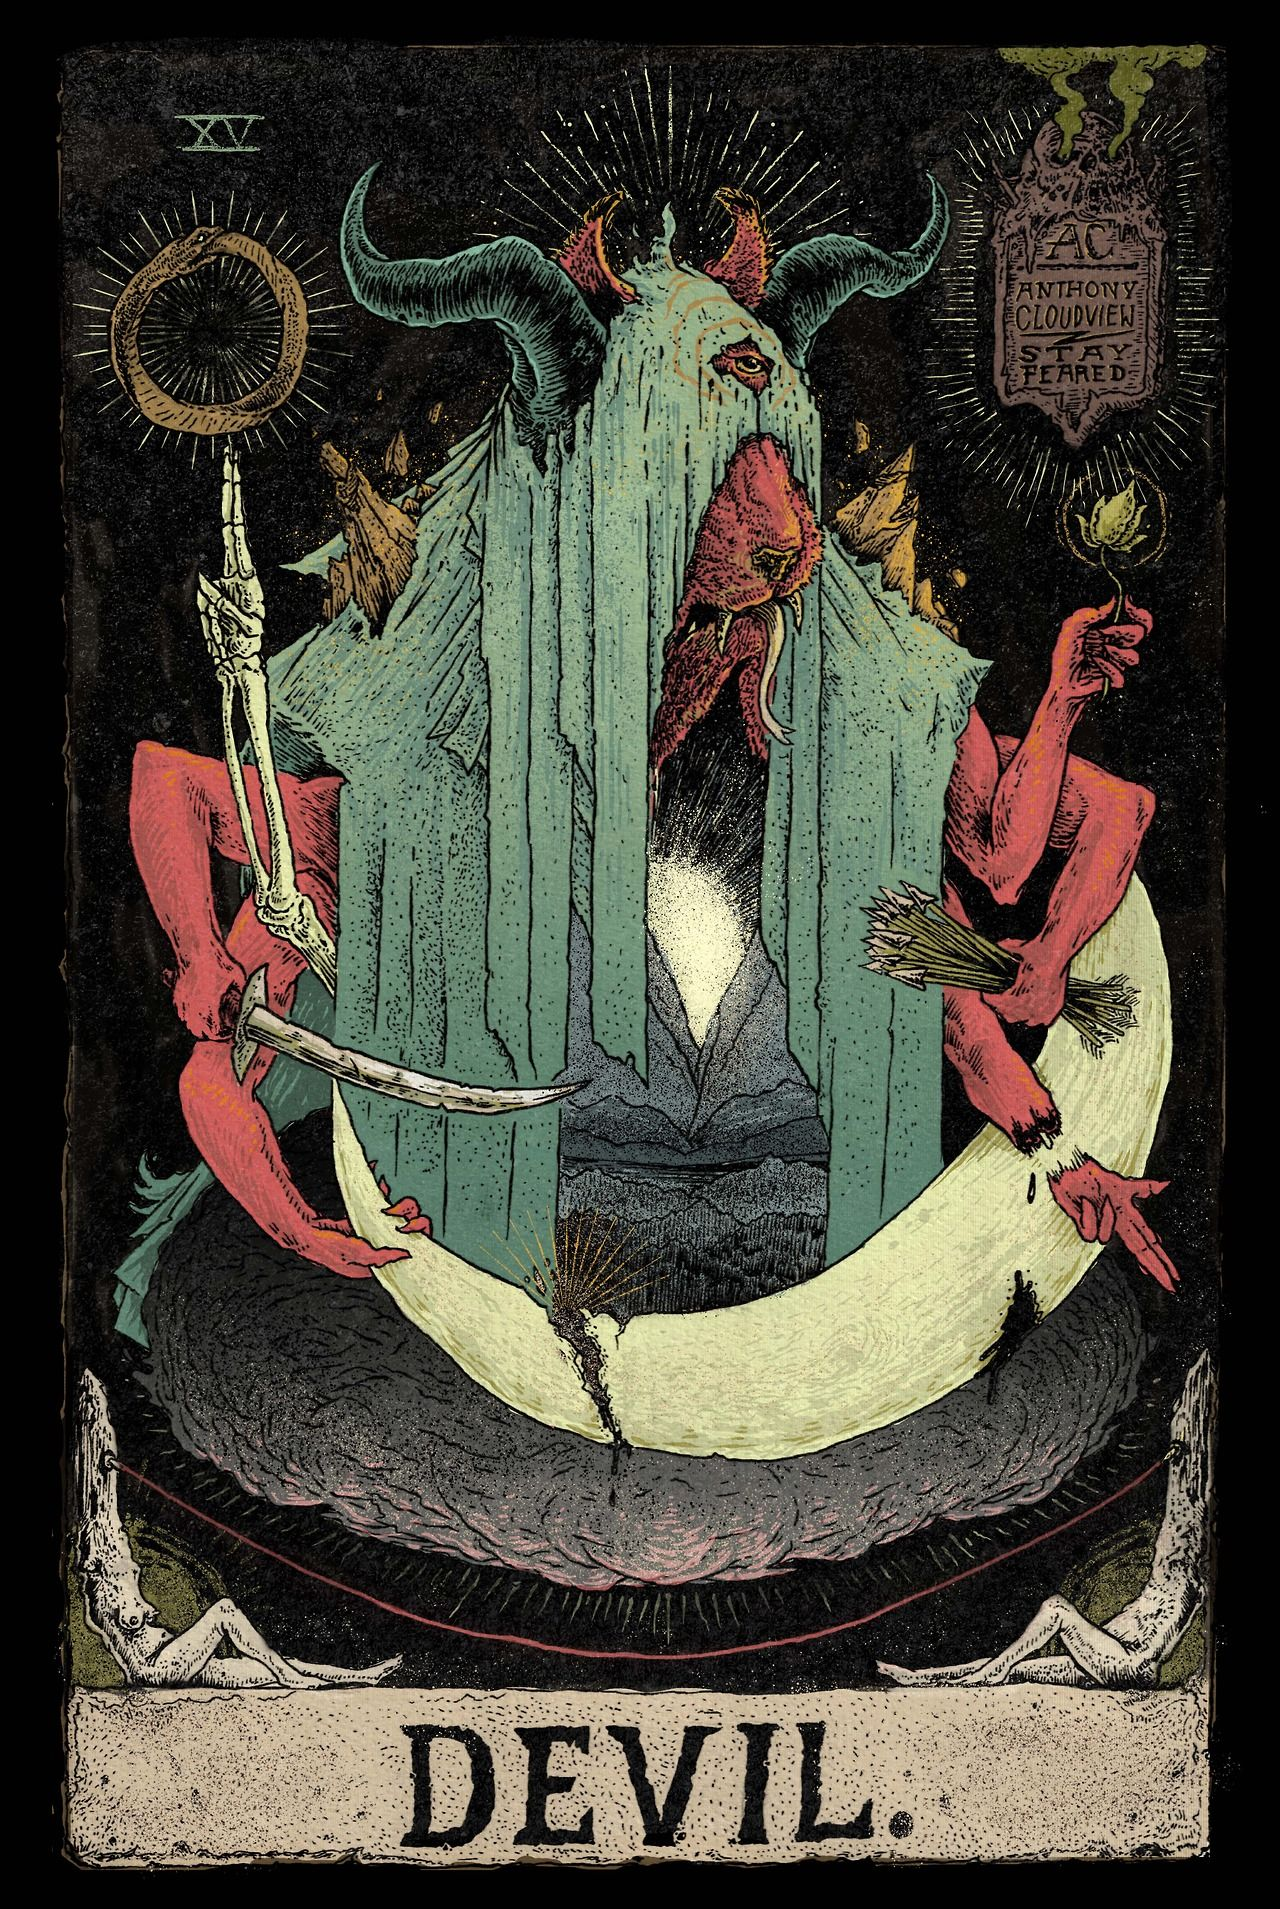 Capricorn is the devil in tarot